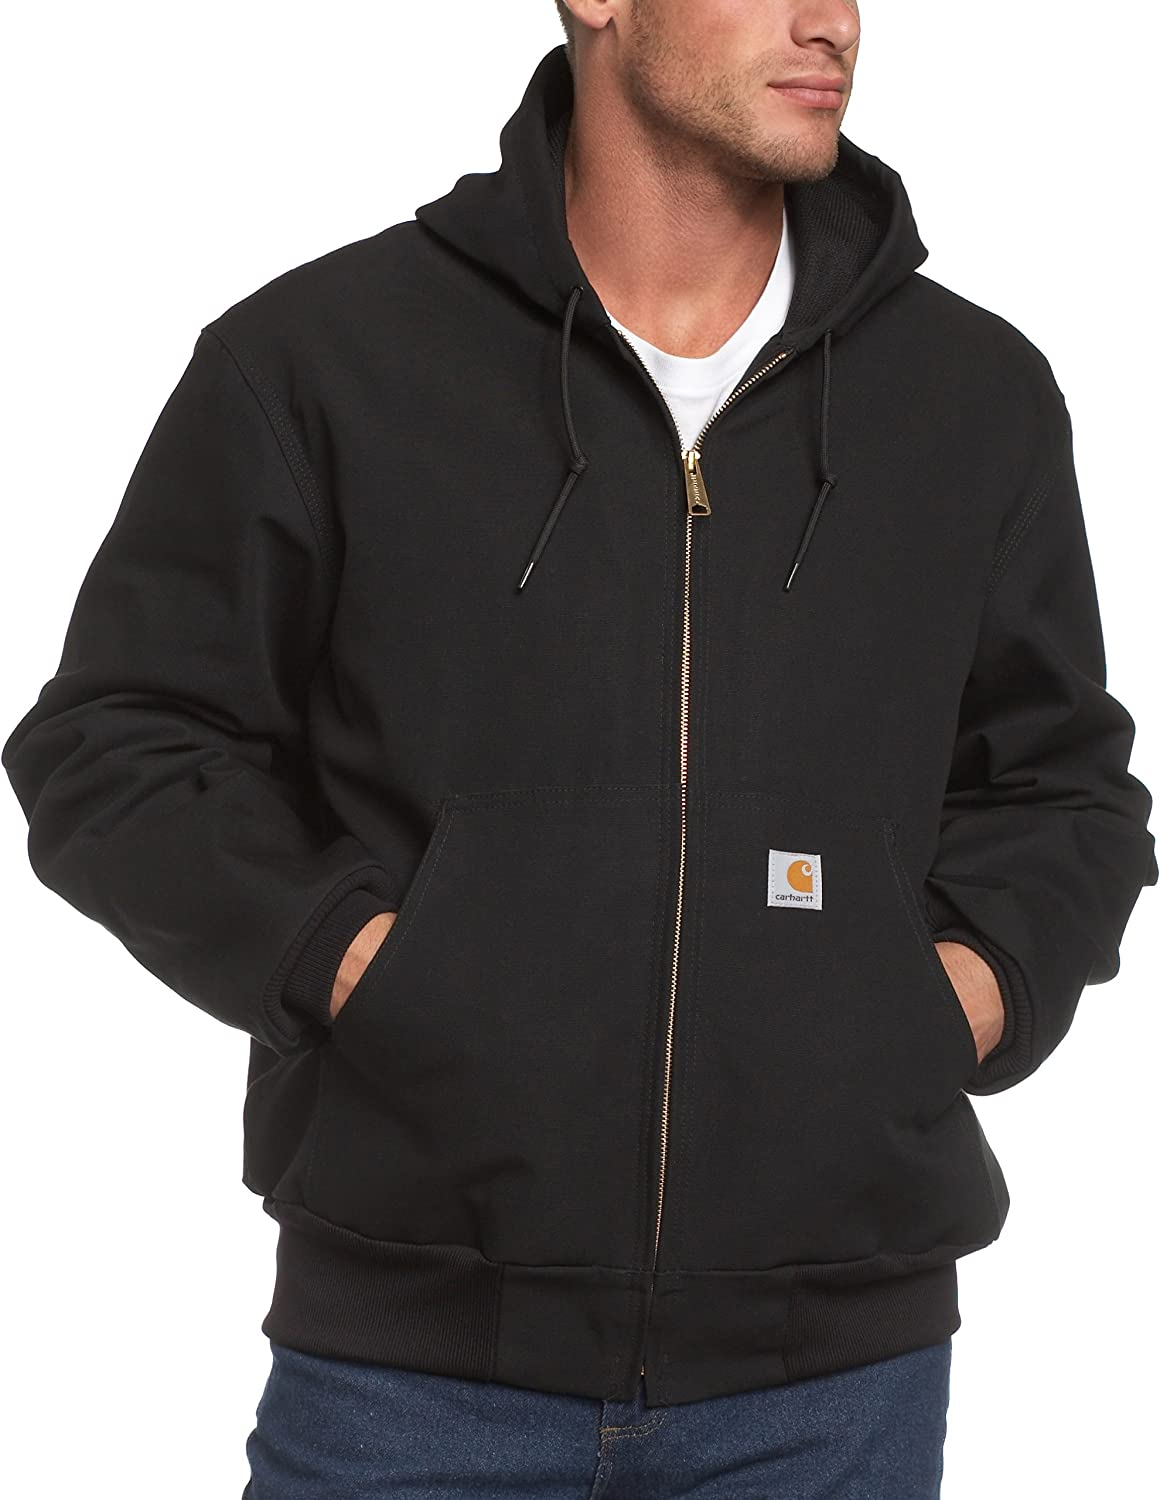 Carhartt mens Thermal Lined Duck Active Jacket J131 (Regular and Big & Tall Sizes)